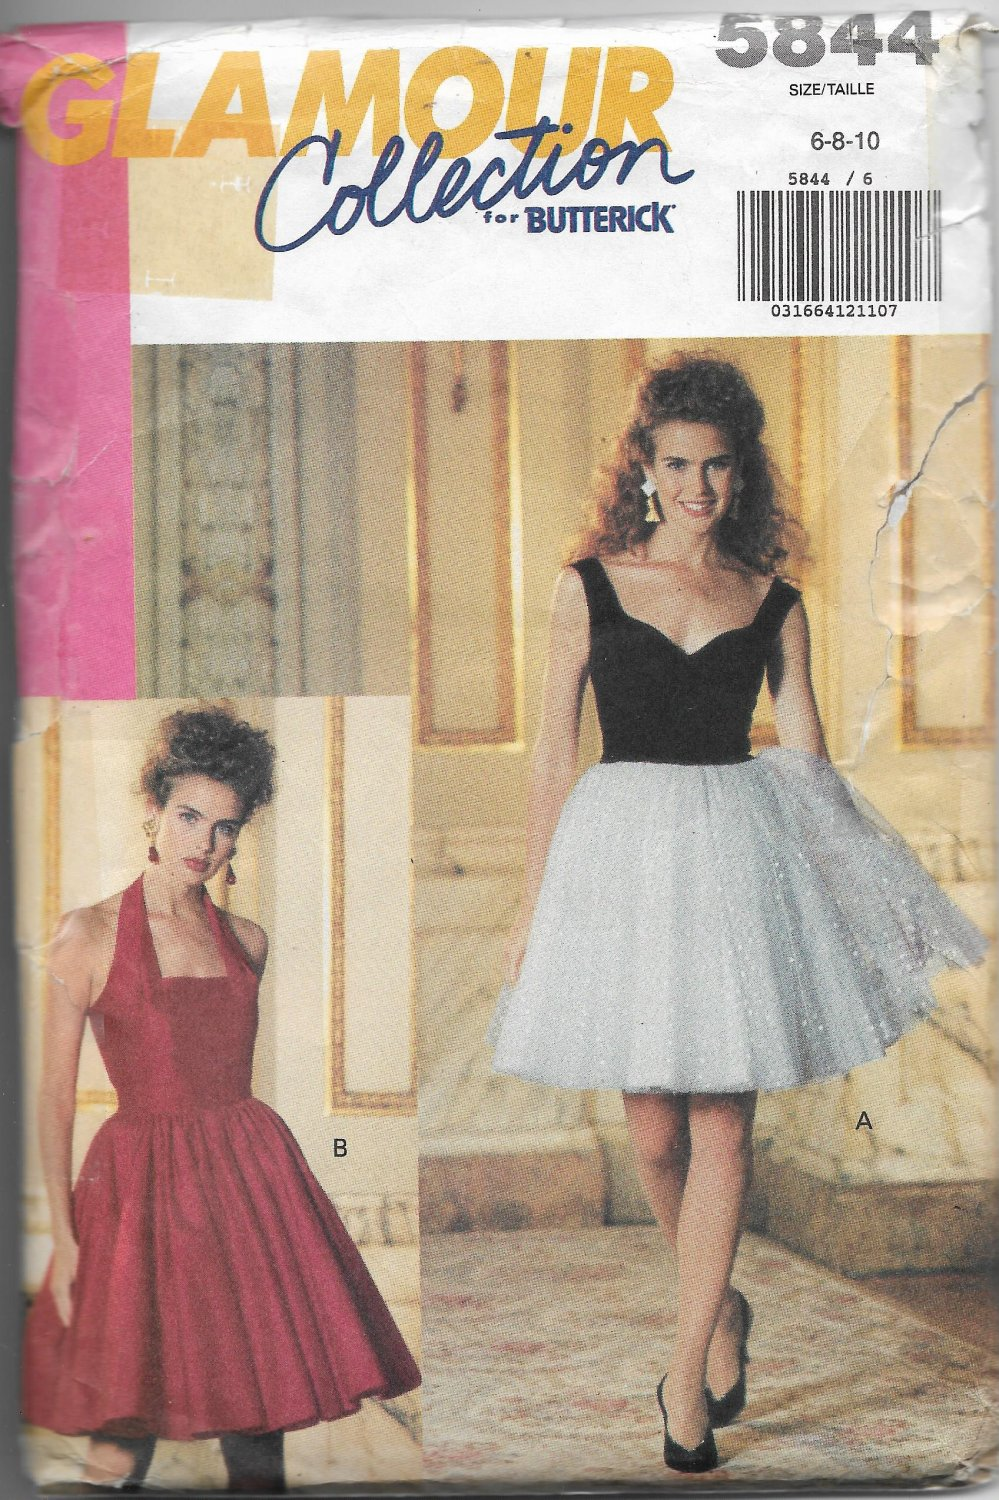 Butterick 5844 Glamour Collection Misses Dress Sizes 6-8-10 Variation Styles